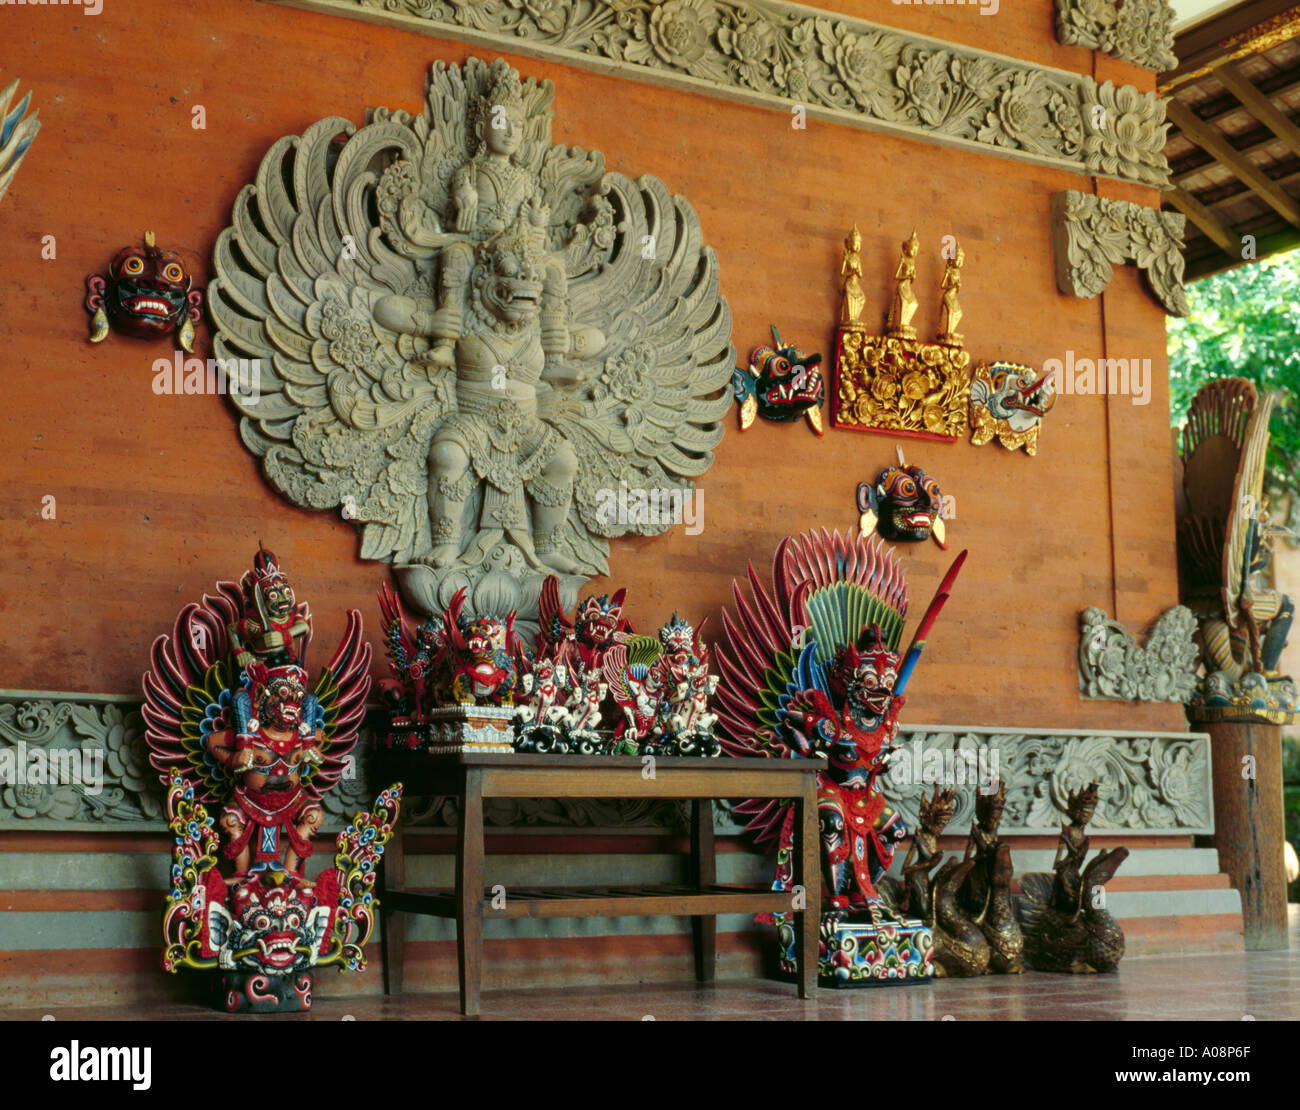 Display of local handicrafts and ornate wall decoration on a house, Bali, Indonesia, Asia. - Stock Image